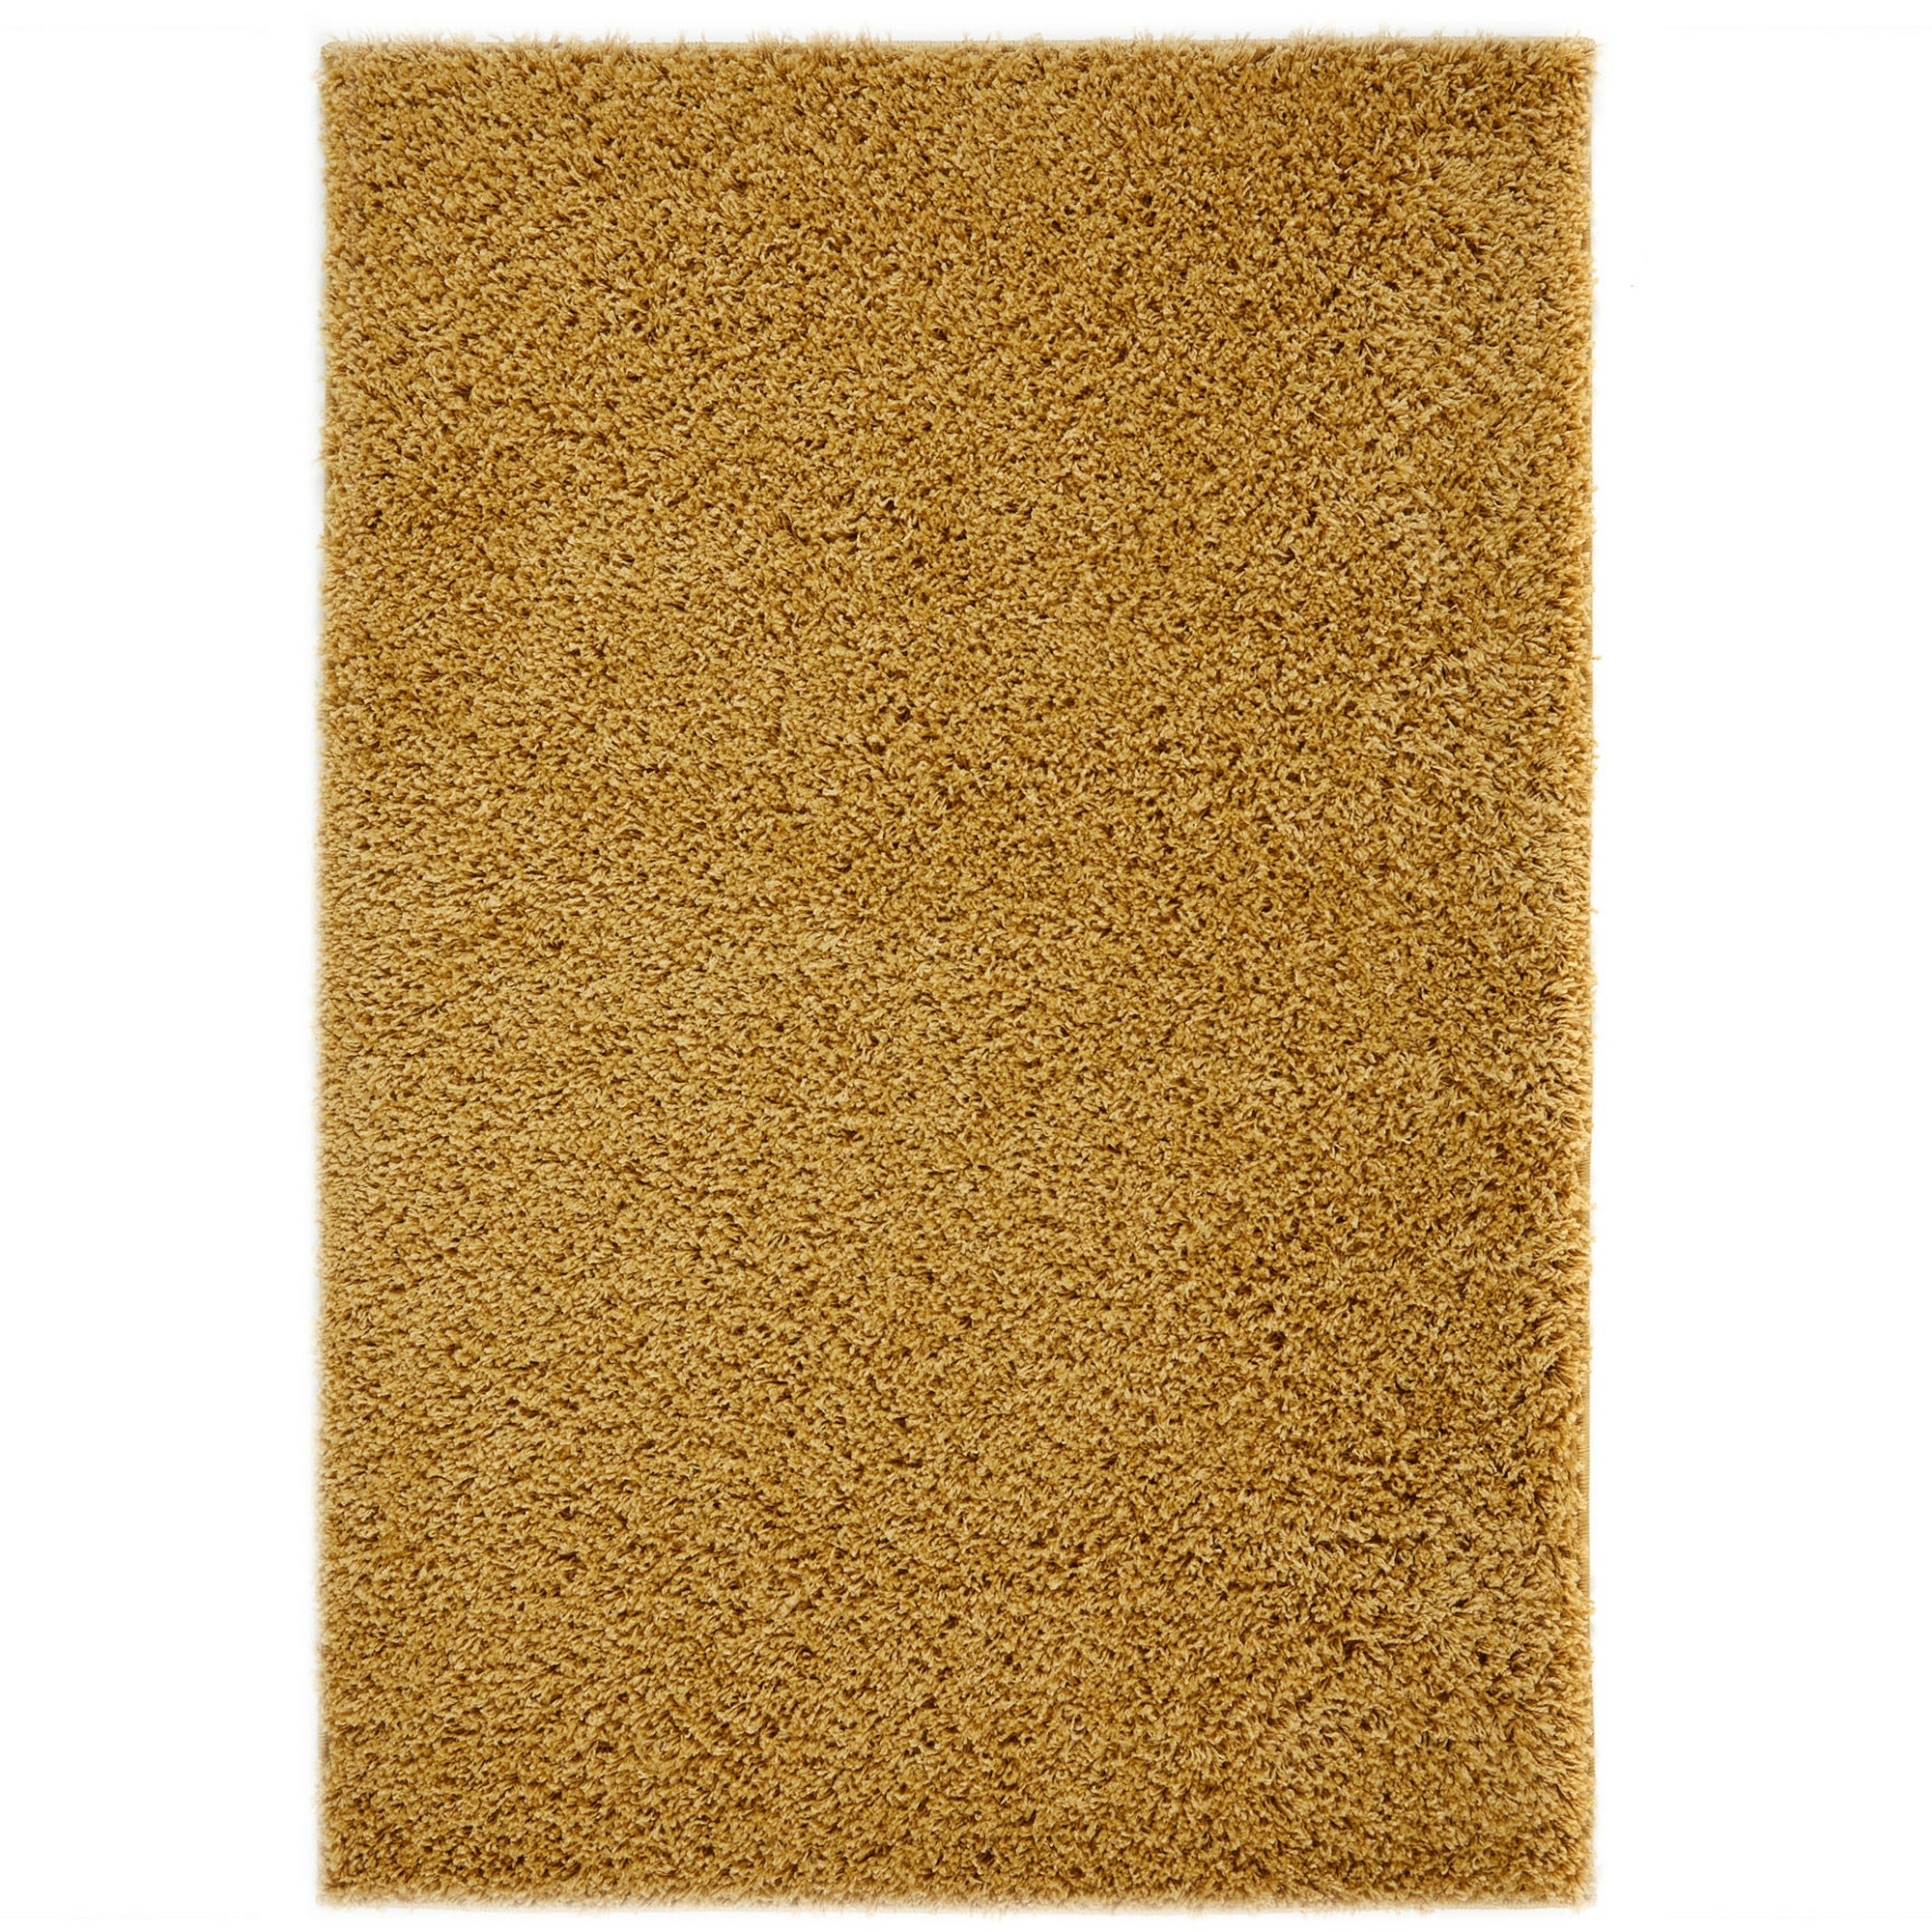 Home & Garden Isla Shaggy Rugs in Gold